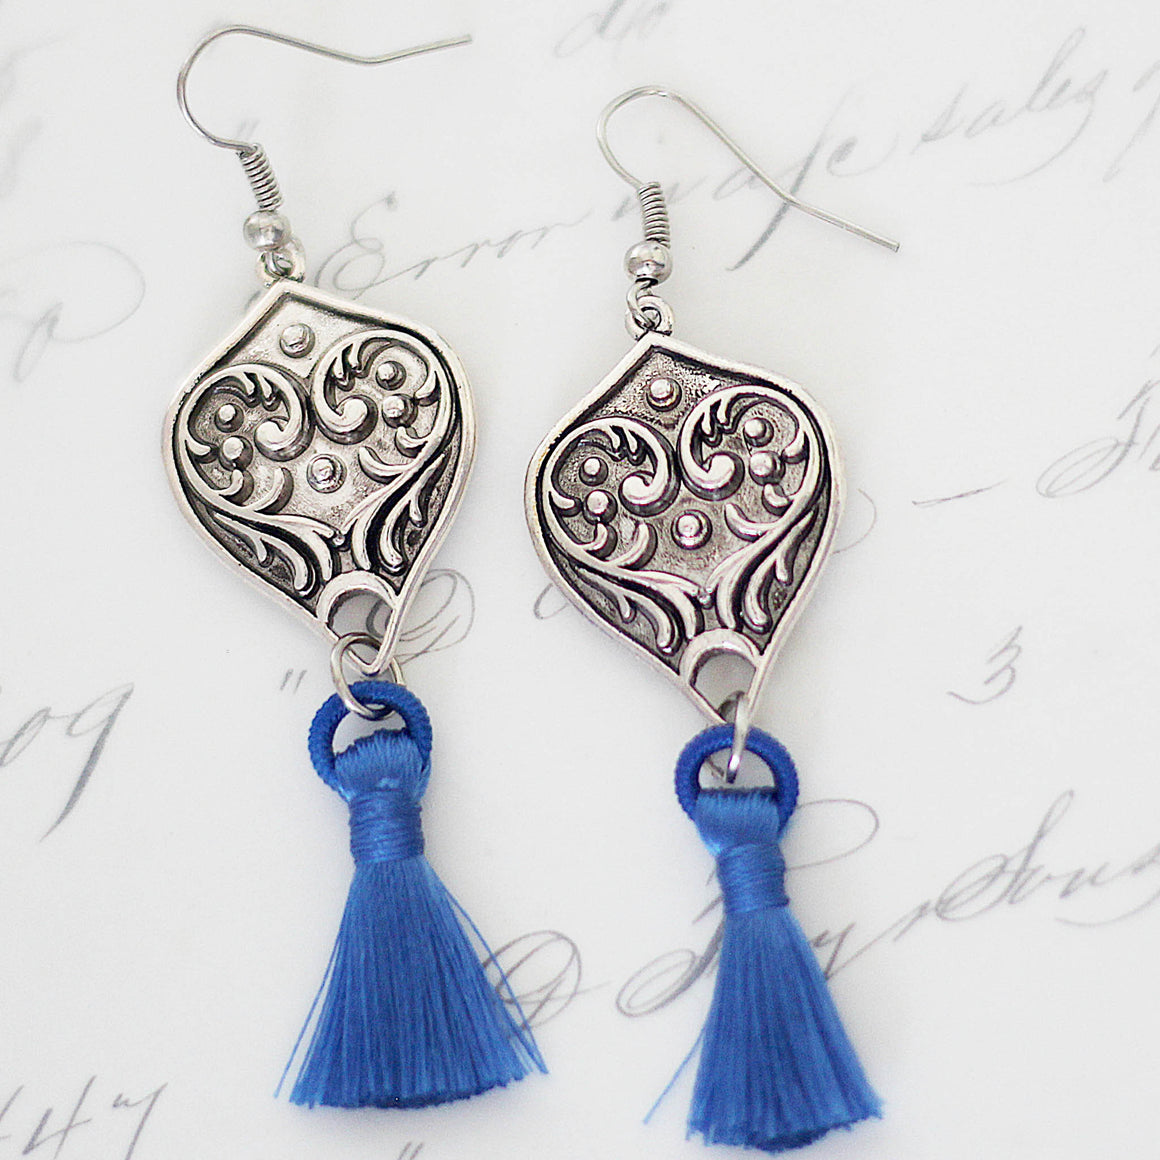 Tasseled Boho Earrings Silver and Lapis Blue